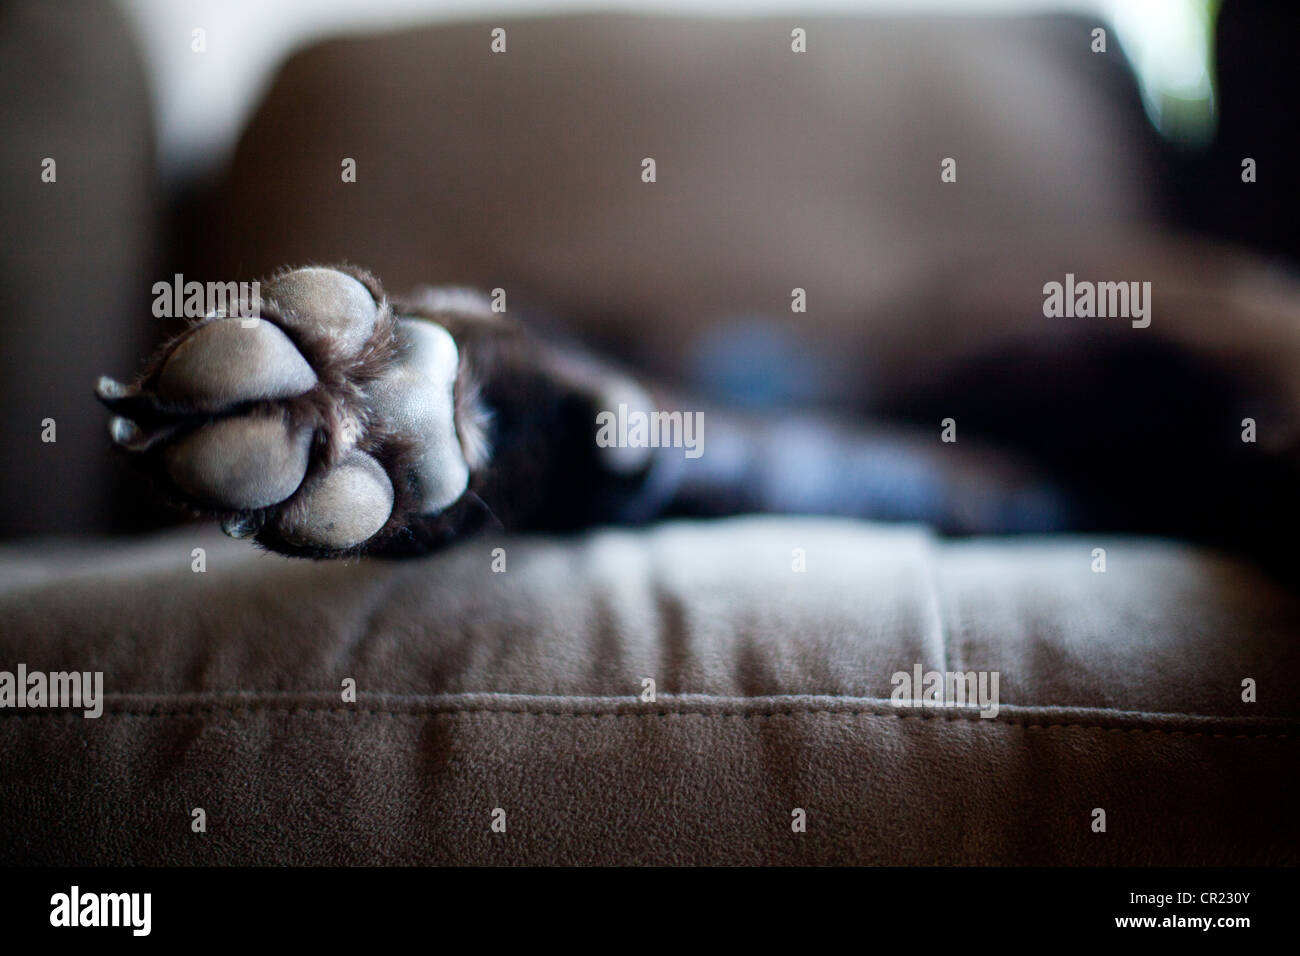 USA, Utah, Salt Lake City, Dog lying on sofa Photo Stock